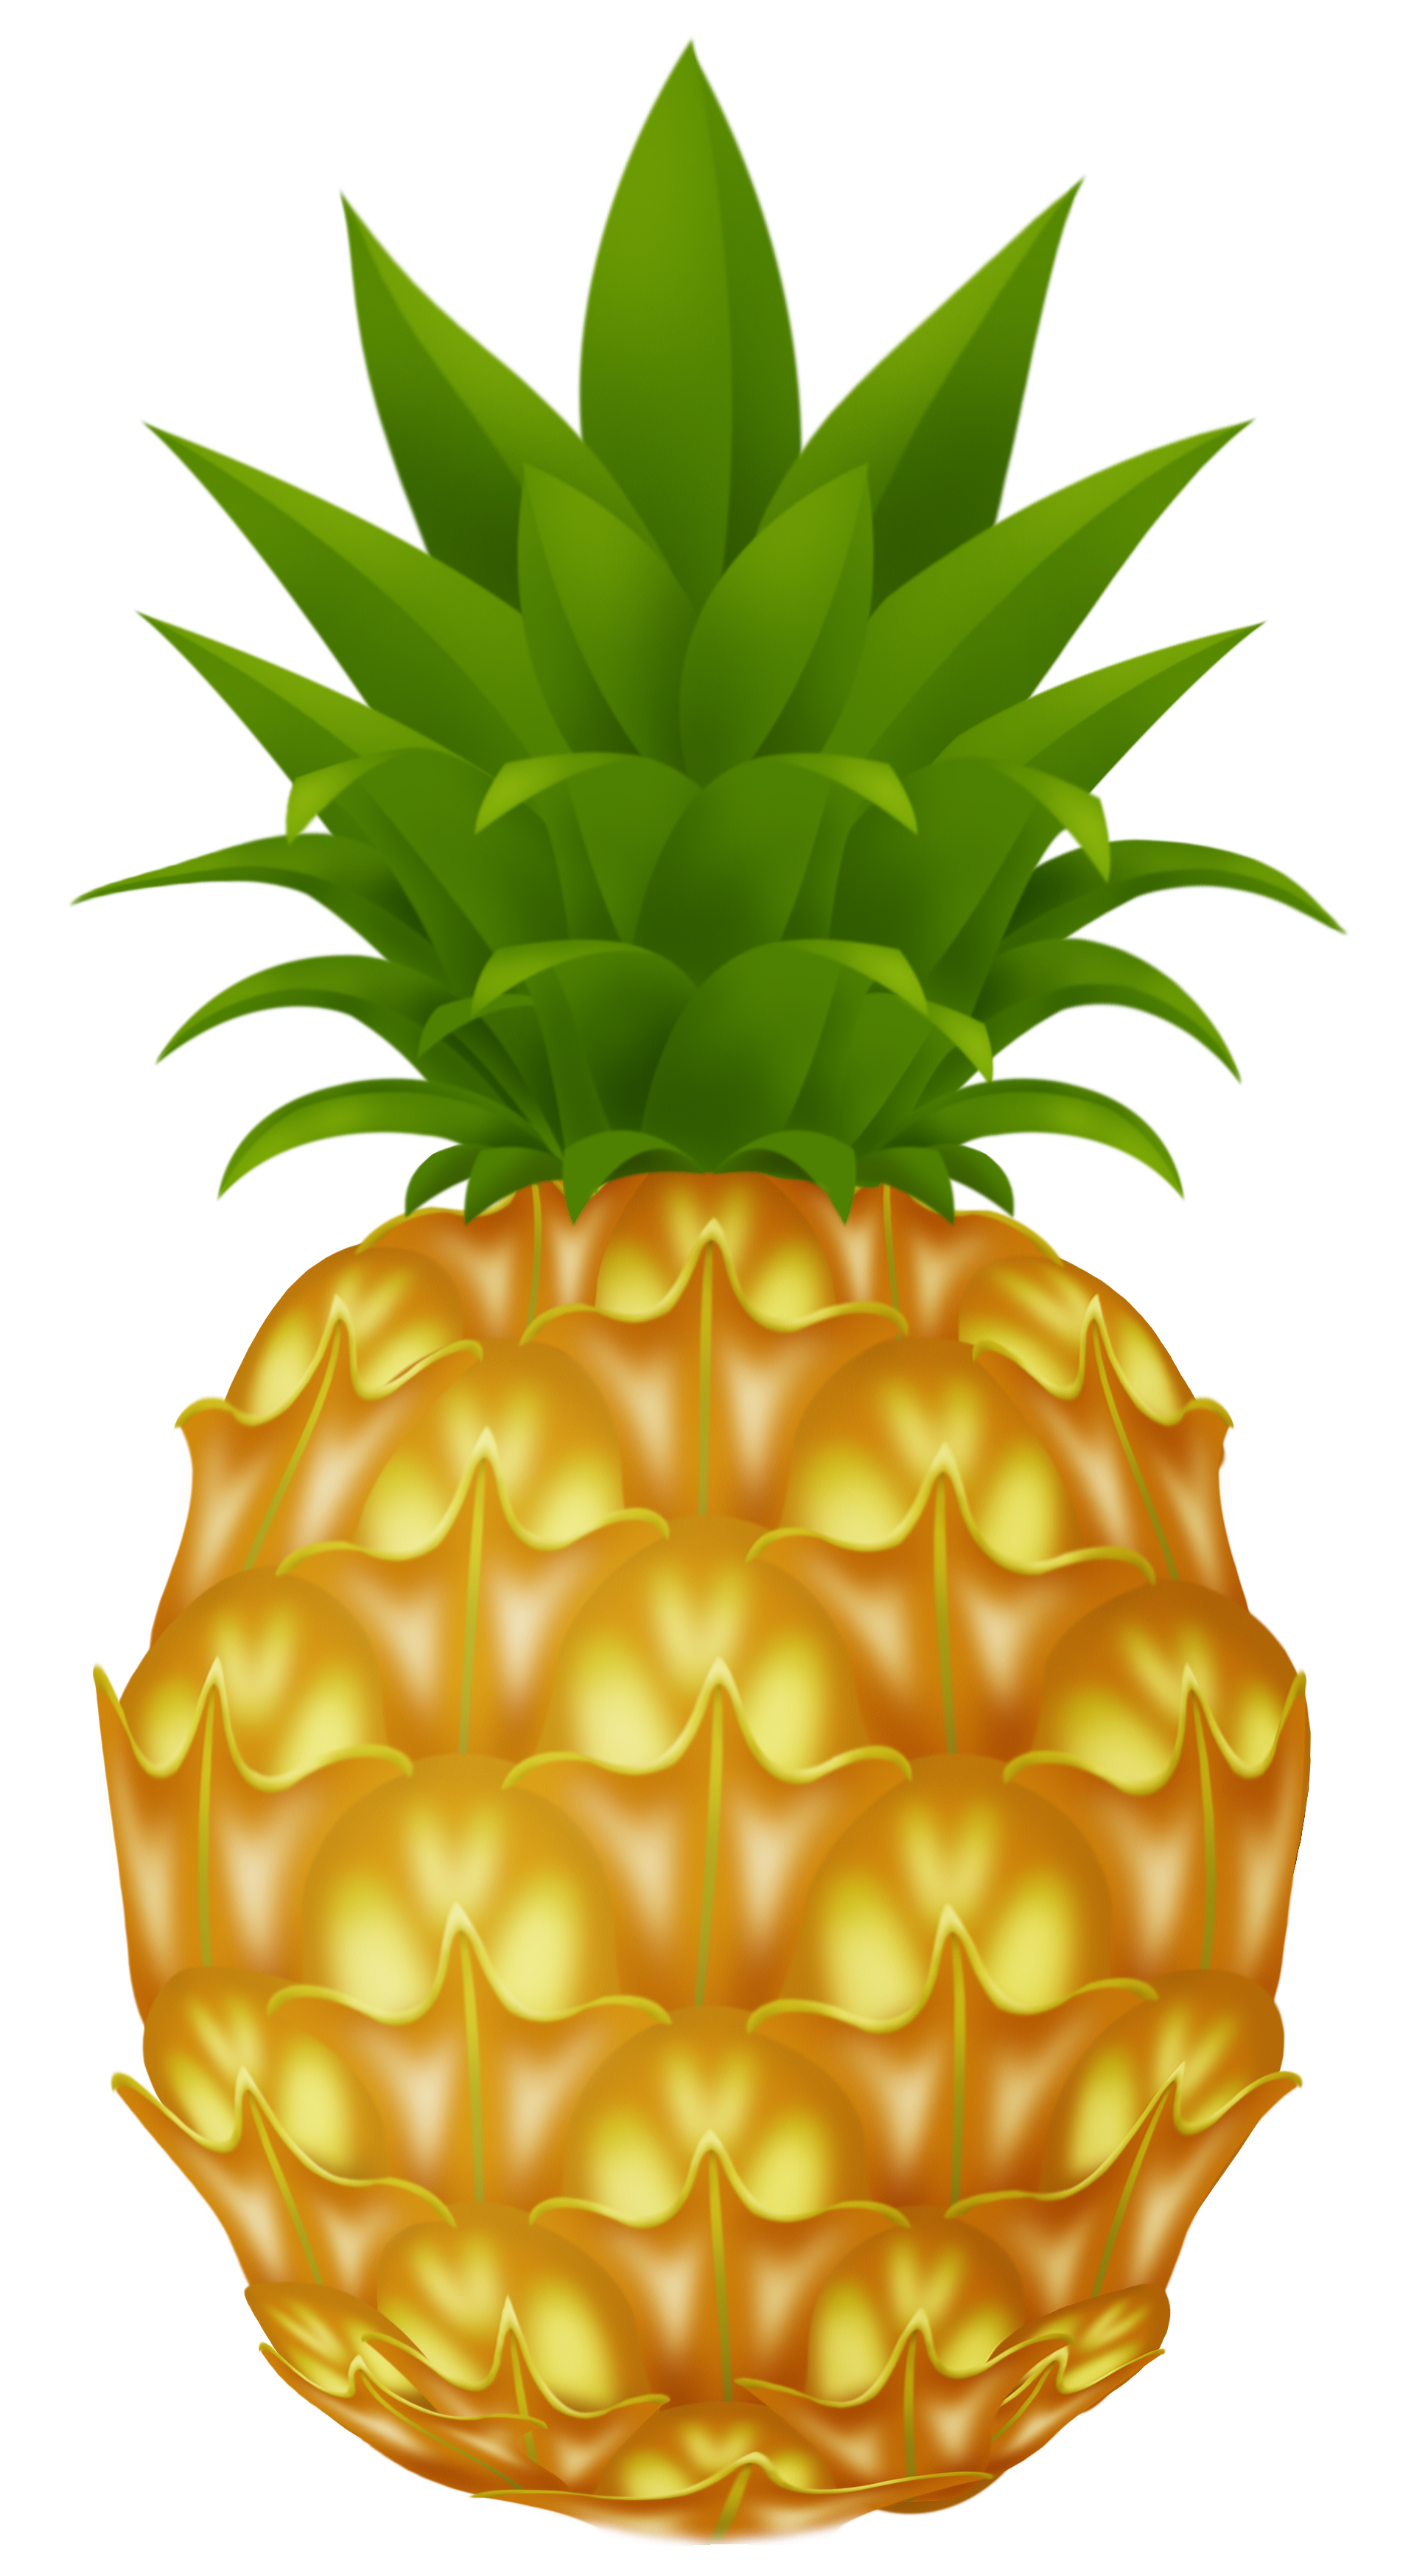 Pineapple clipart sunglasses. Png picture gallery yopriceville